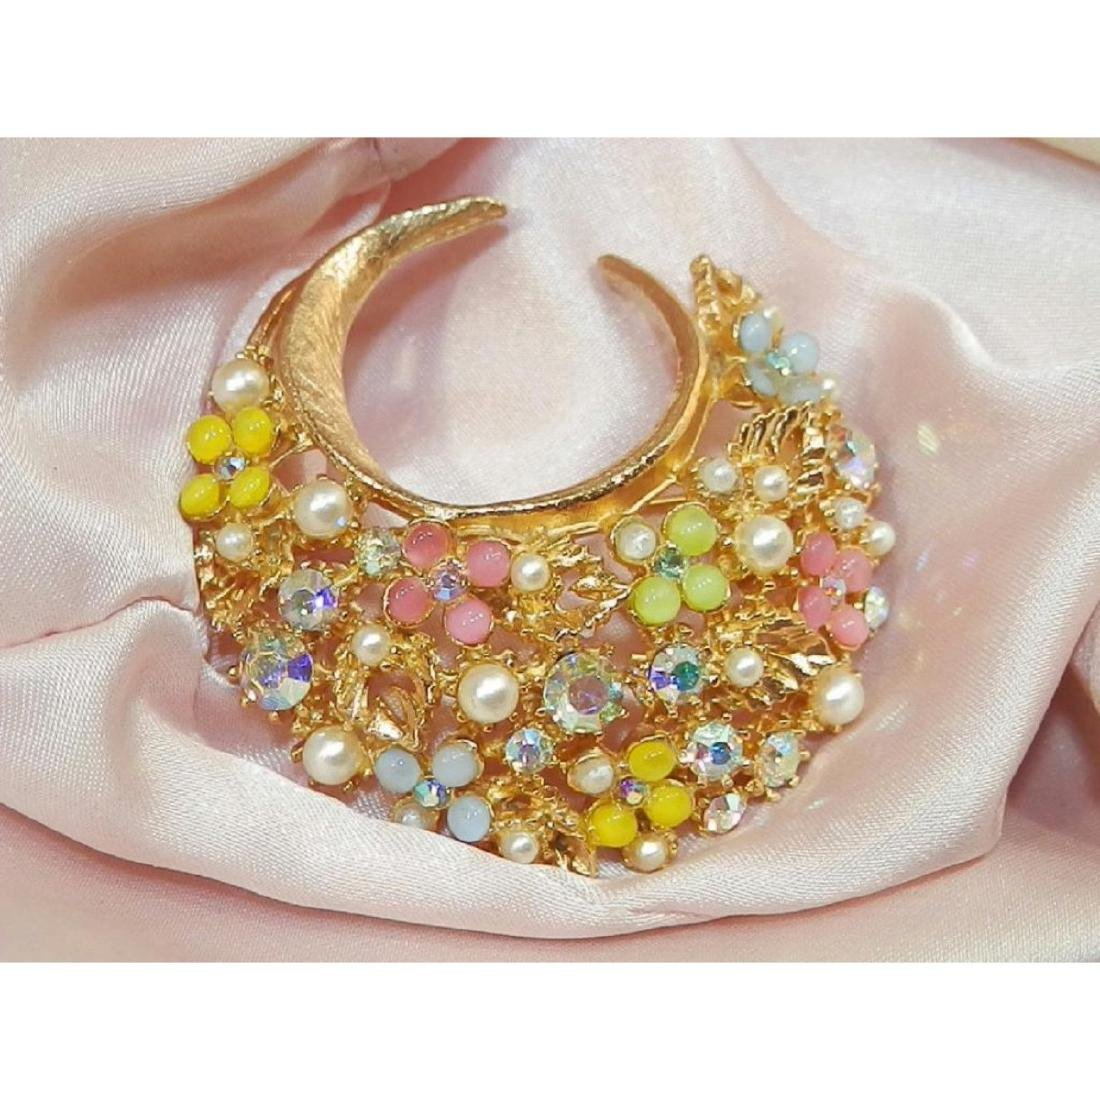 Vintage Signed ART Rhinestone Thermoset Faux Pearl - 2